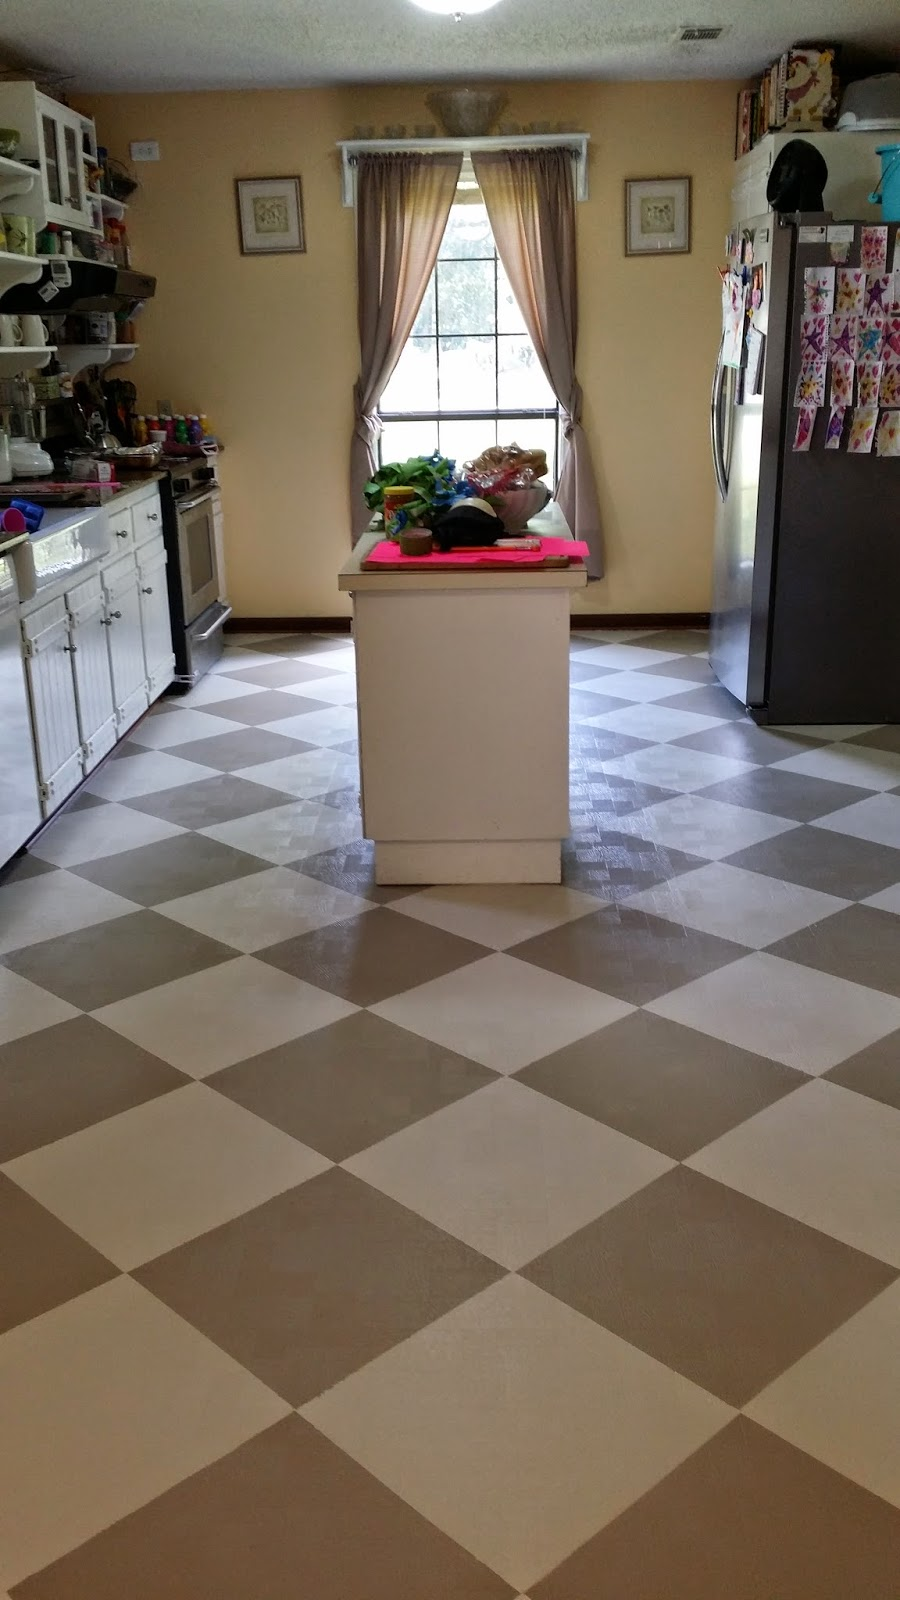 The virtuous wife how i painted my linoleum floors for Painting linoleum floors